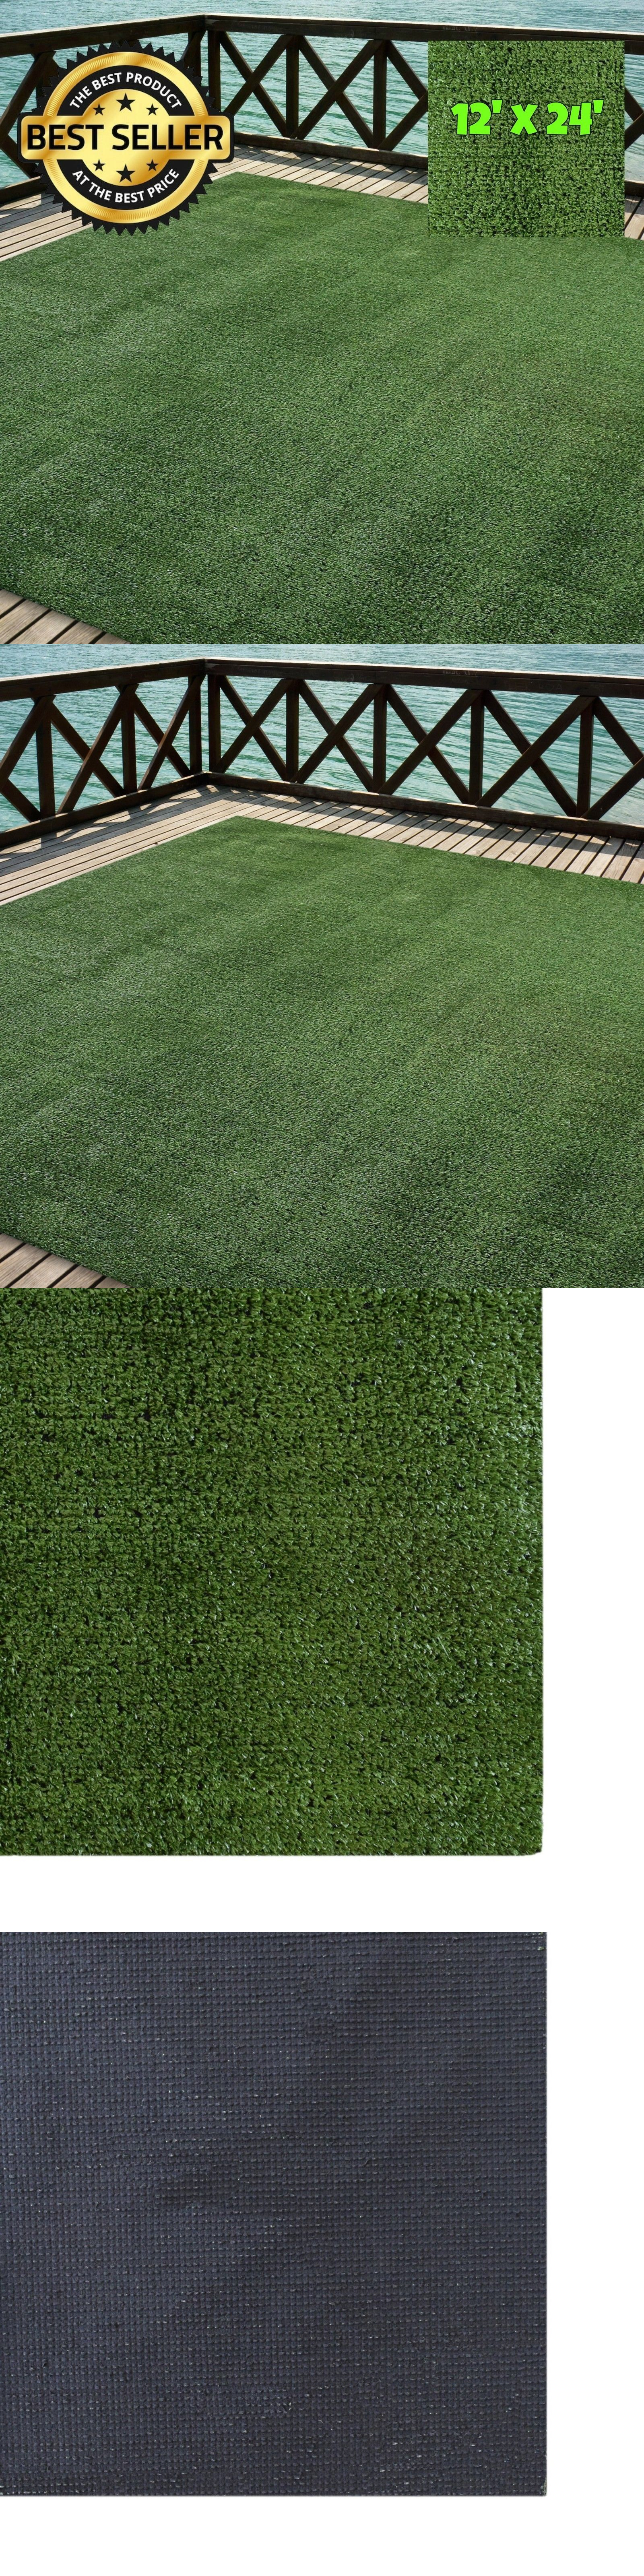 Synthetic grass outdoor turf rug green artificial grass